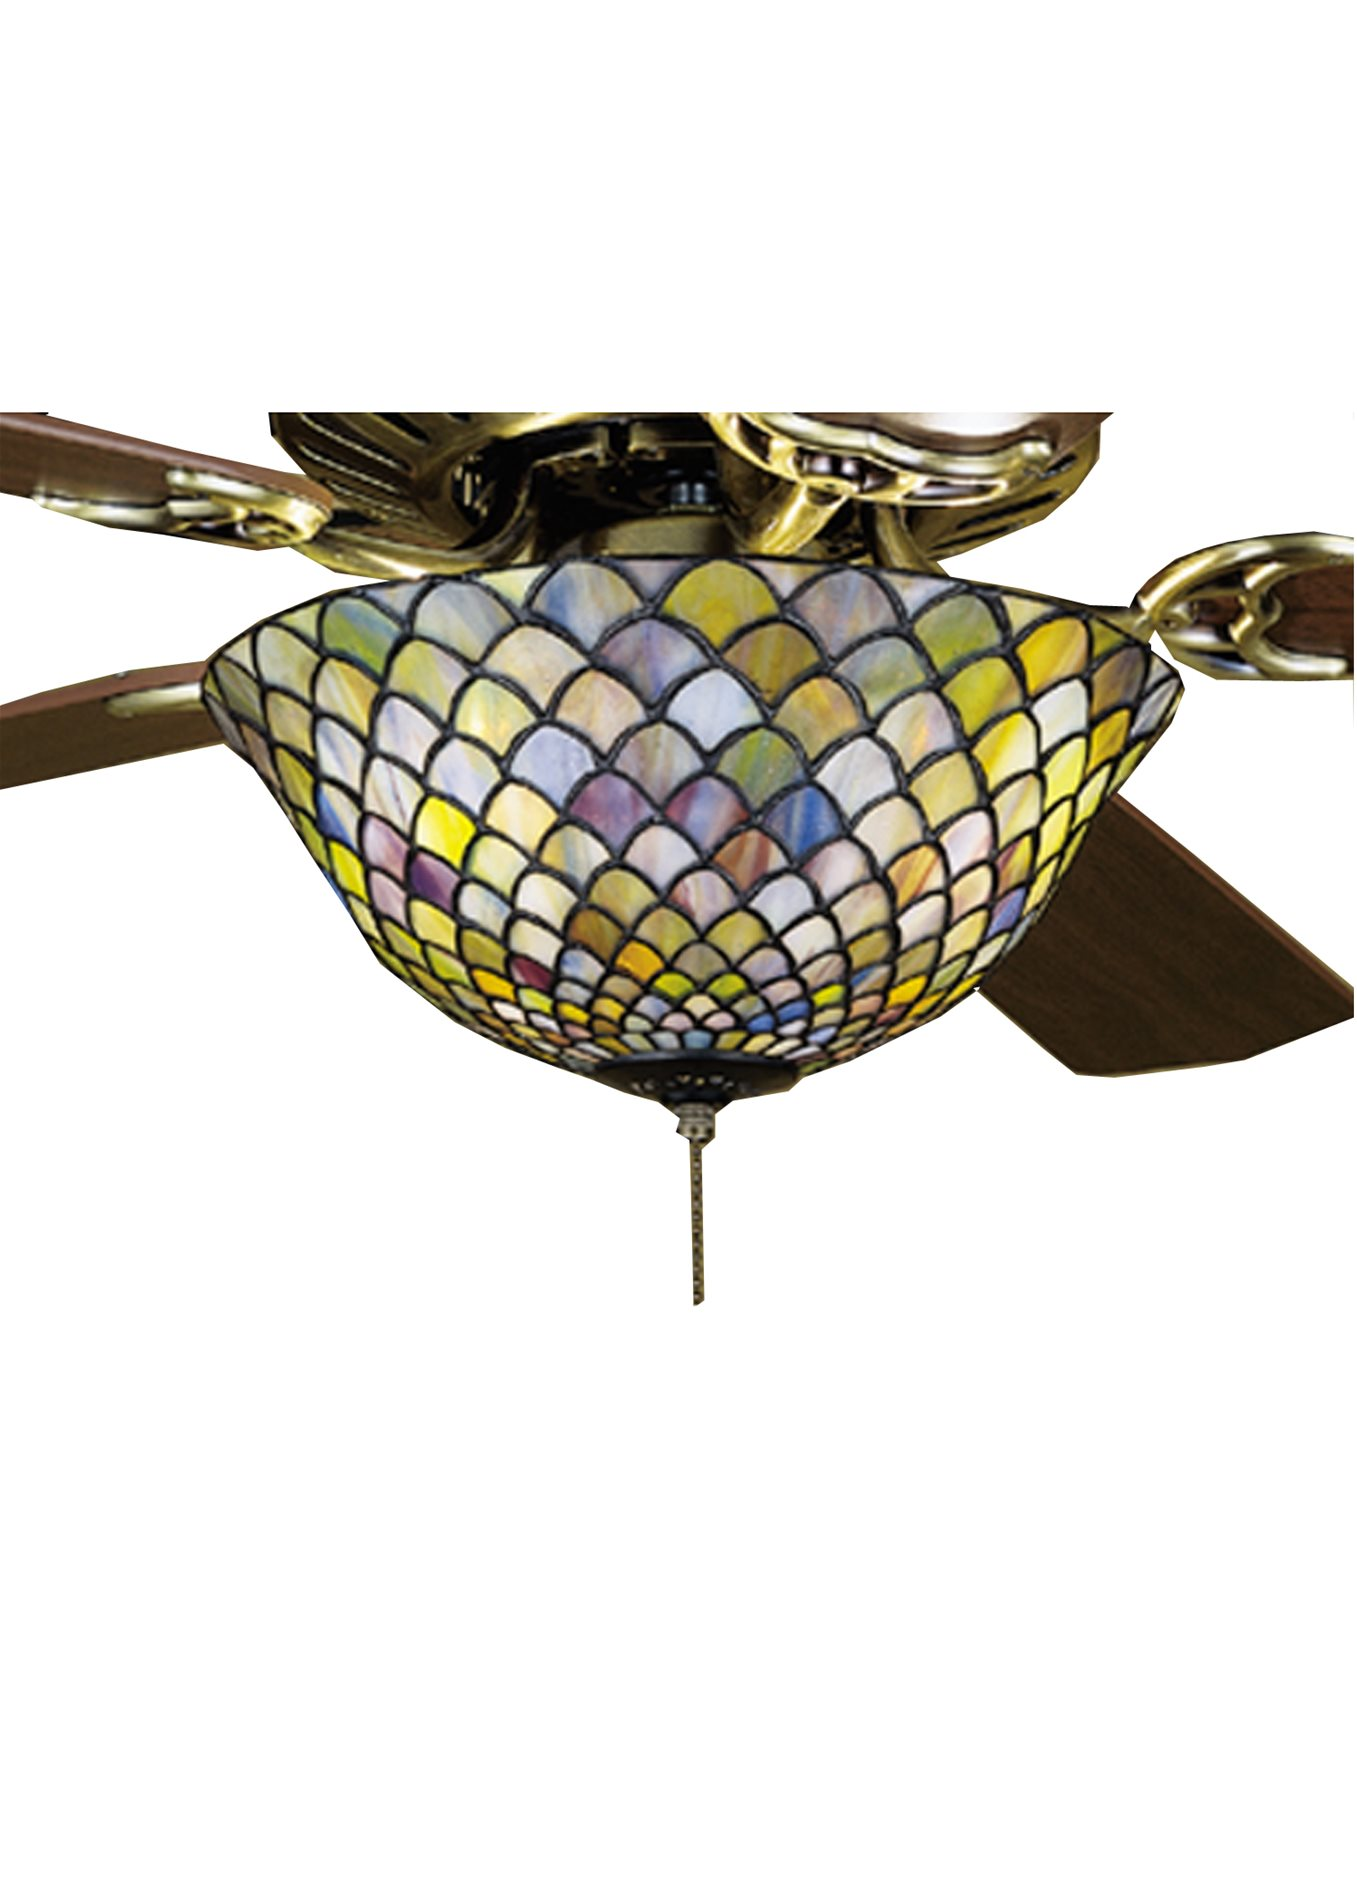 Meyda Tiffany 27451 Fishscale Tiffany Ceiling Fan Light